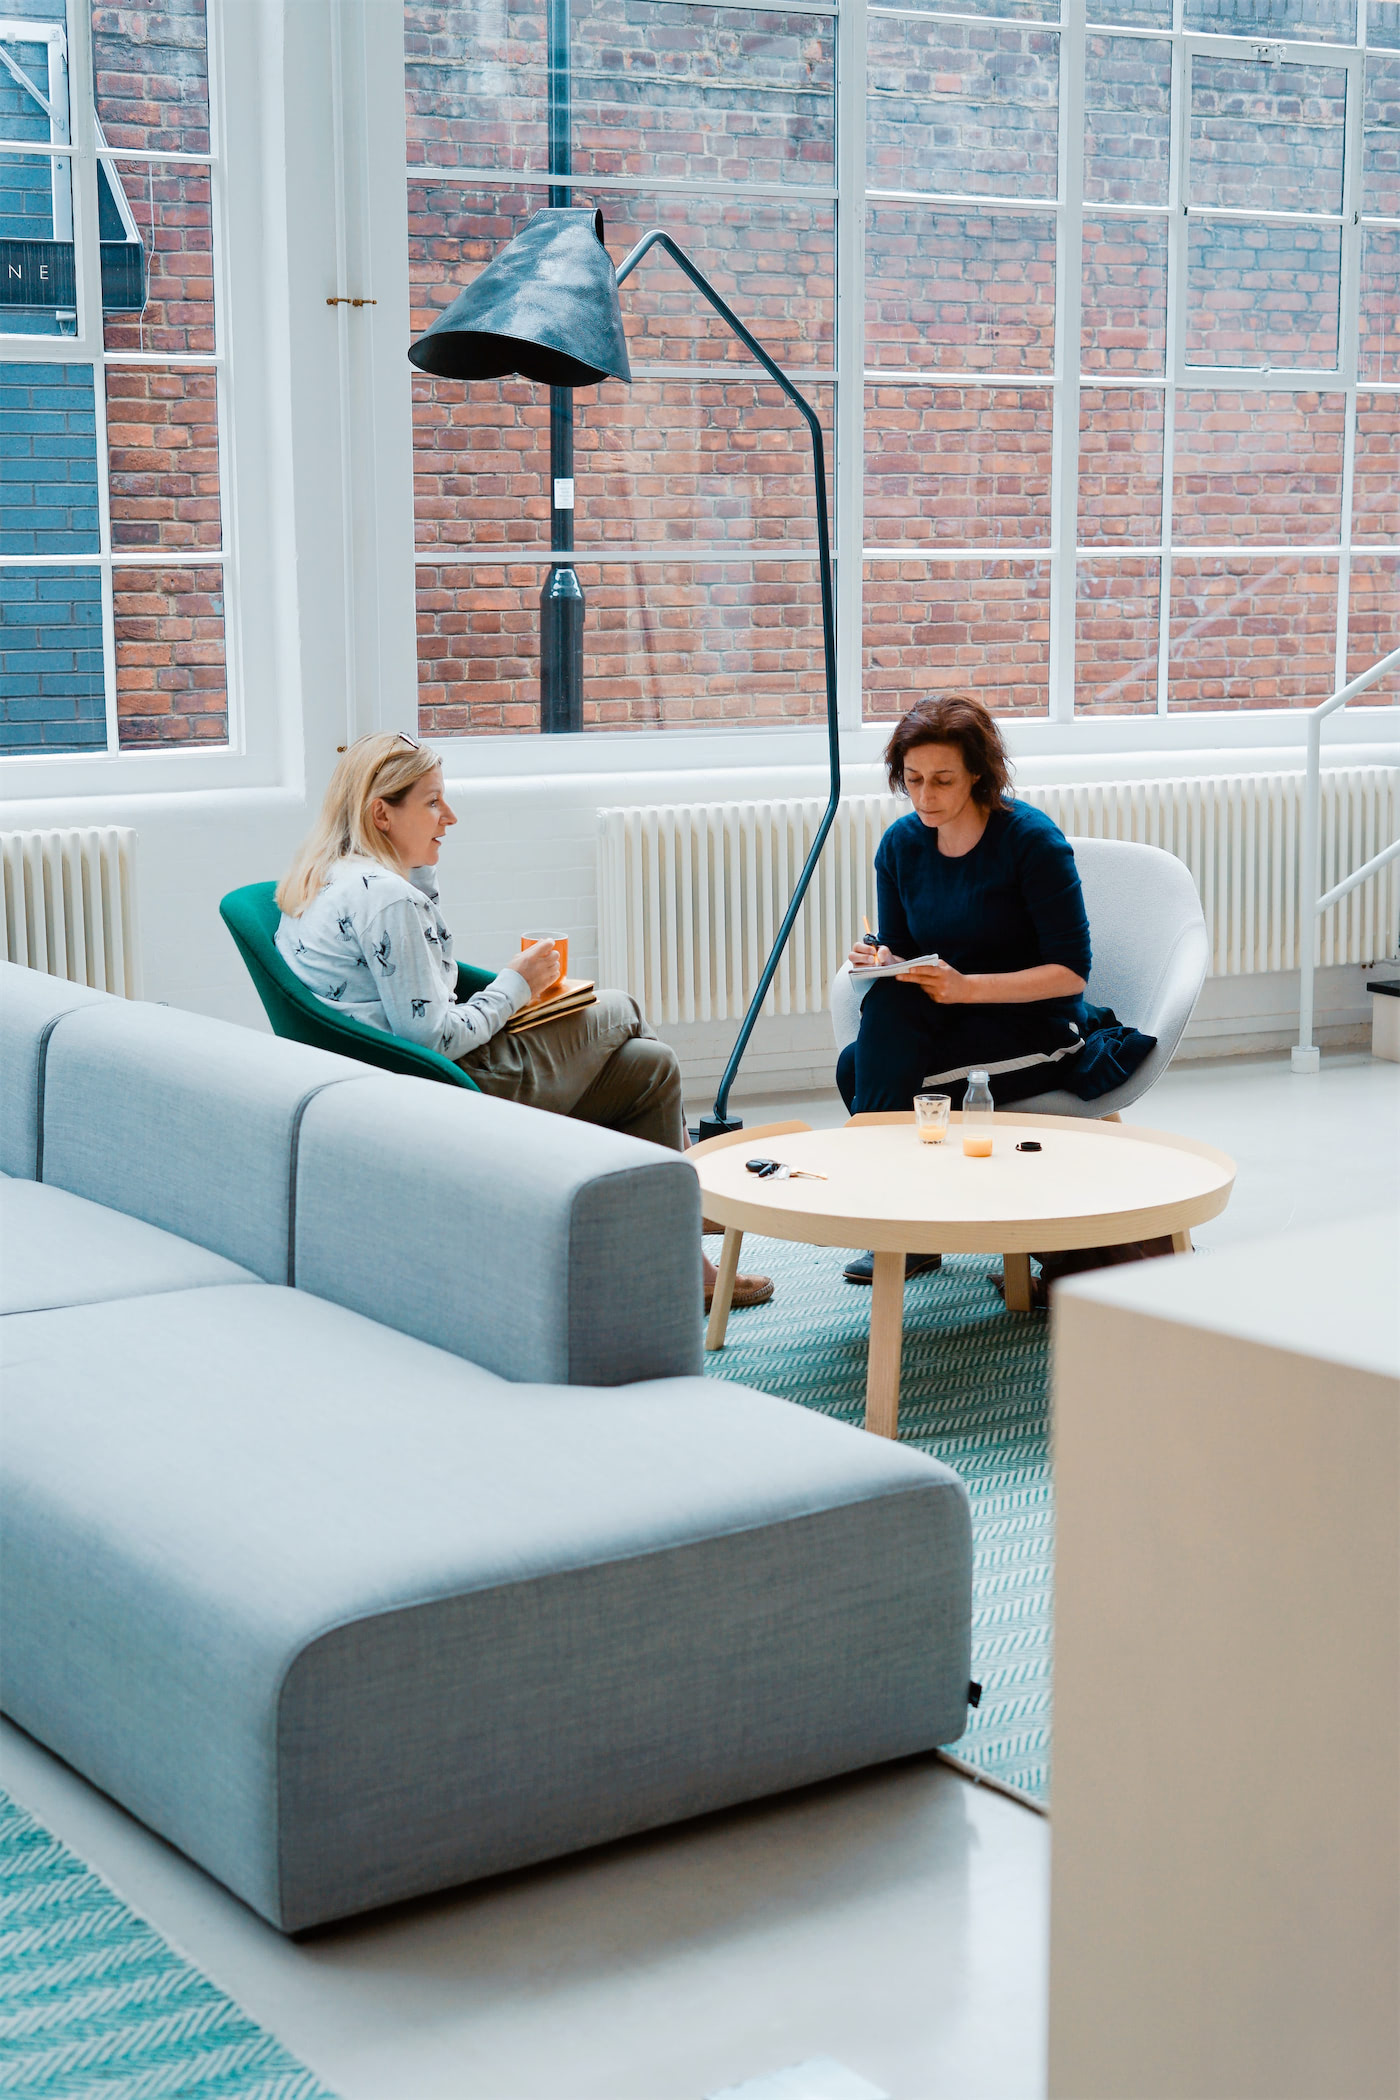 Two woman sitting and chatting in a modern looking waiting room or lobby